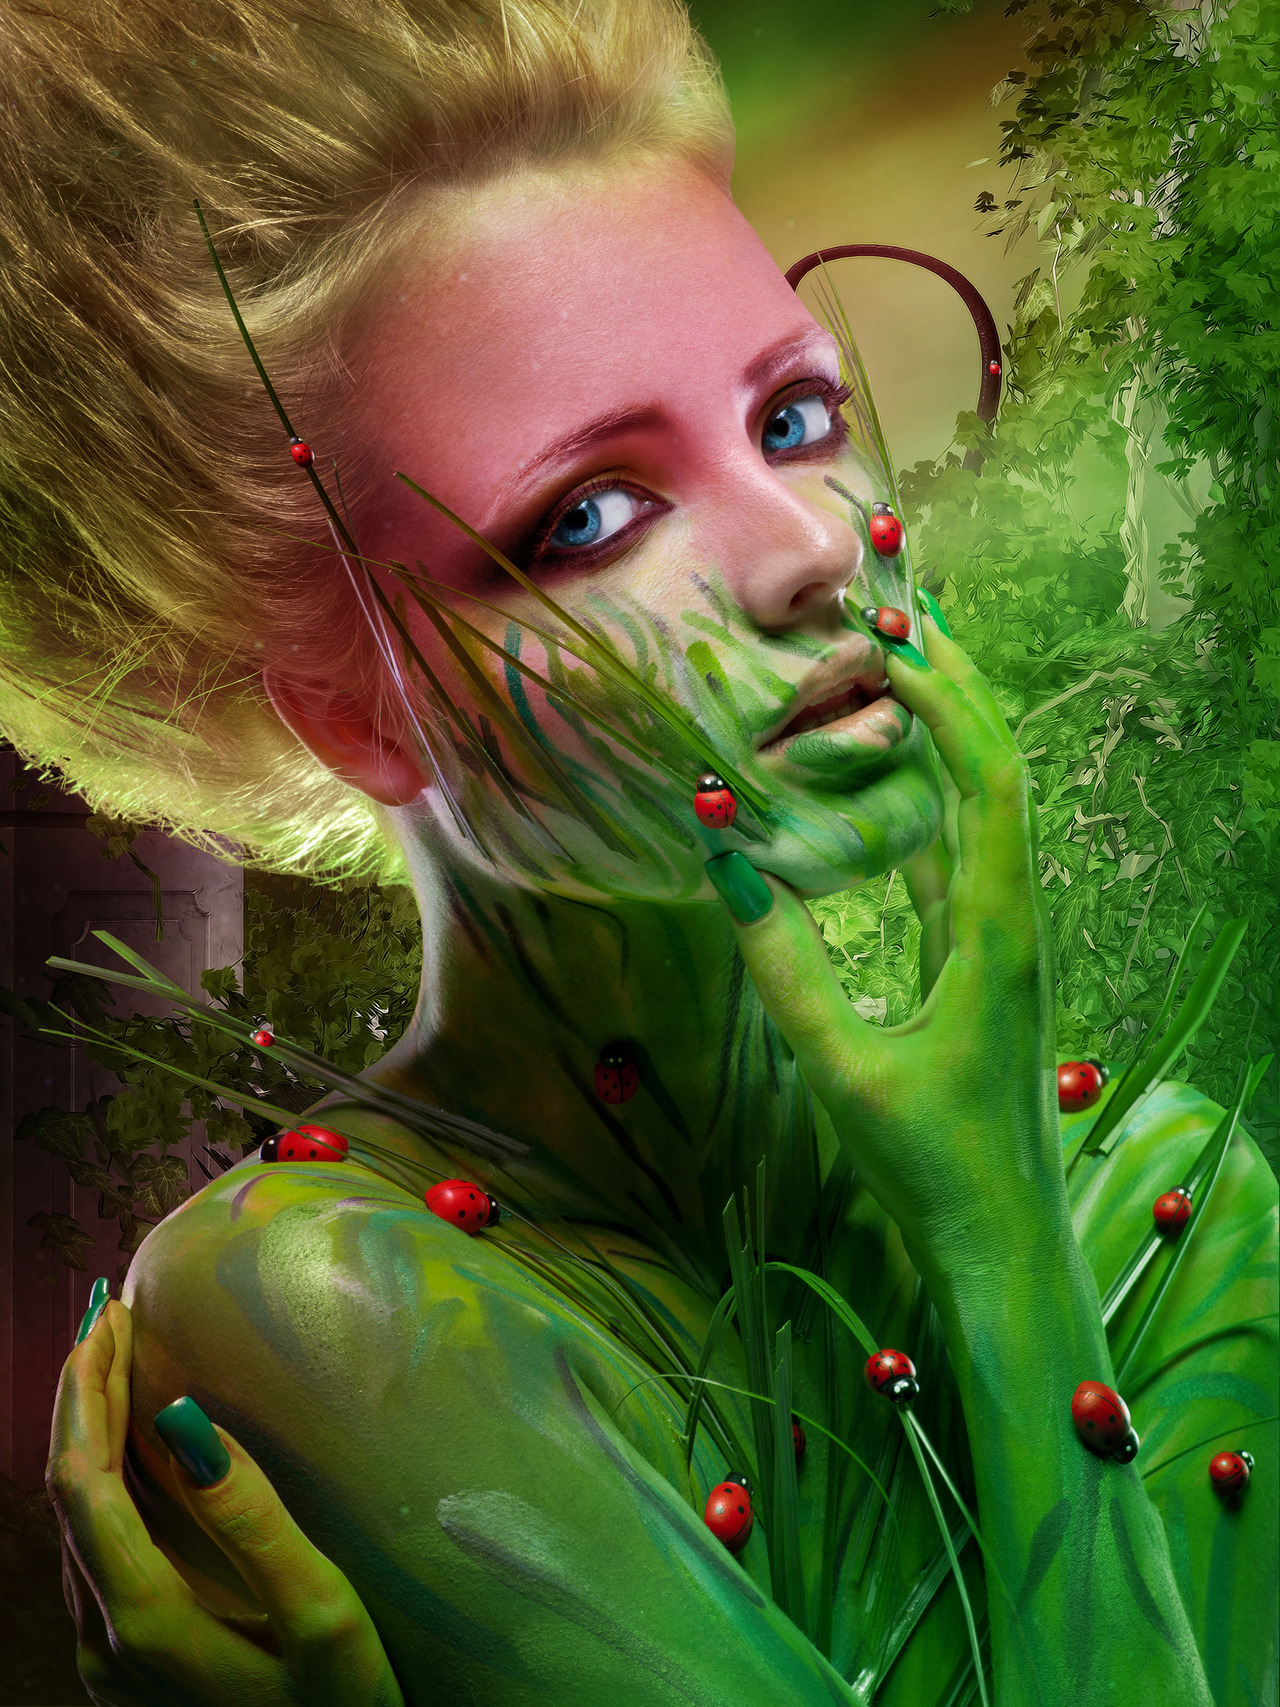 Digital art selected for the Daily Inspiration #1206